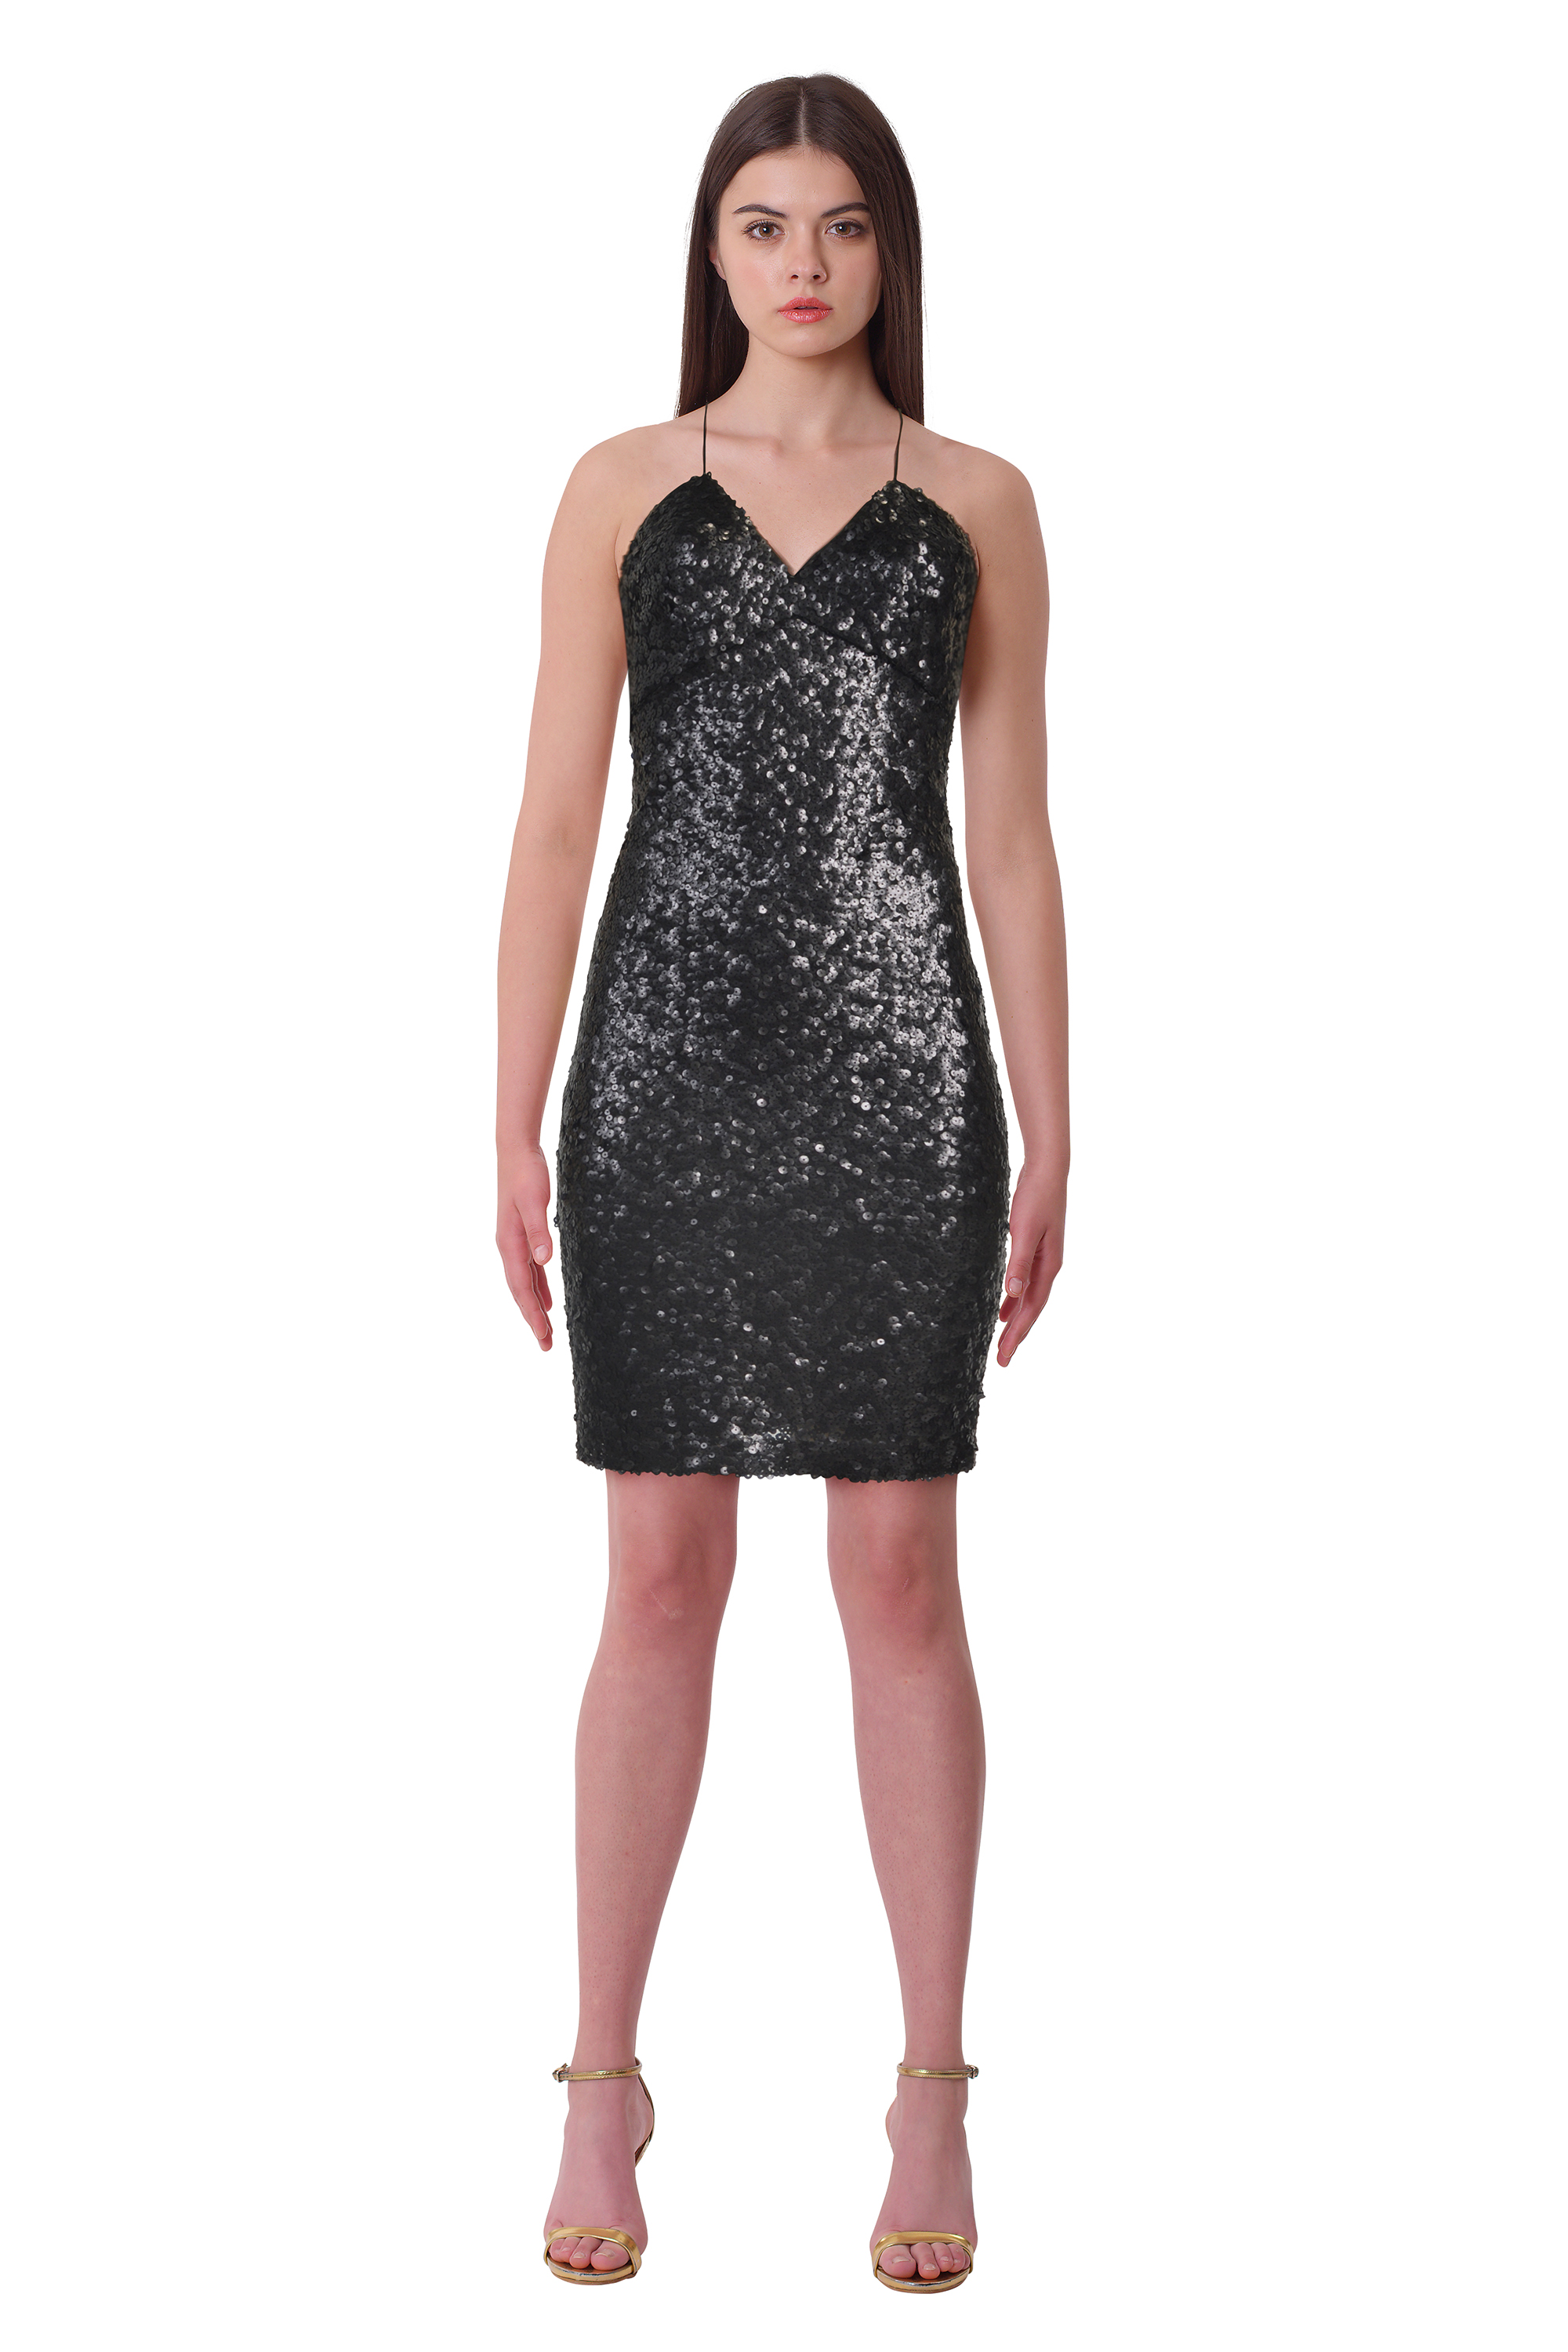 c8df3688a2b Lauren Ralph Lauren Black Allover Sequined V-Neck Sheath Cocktail ...